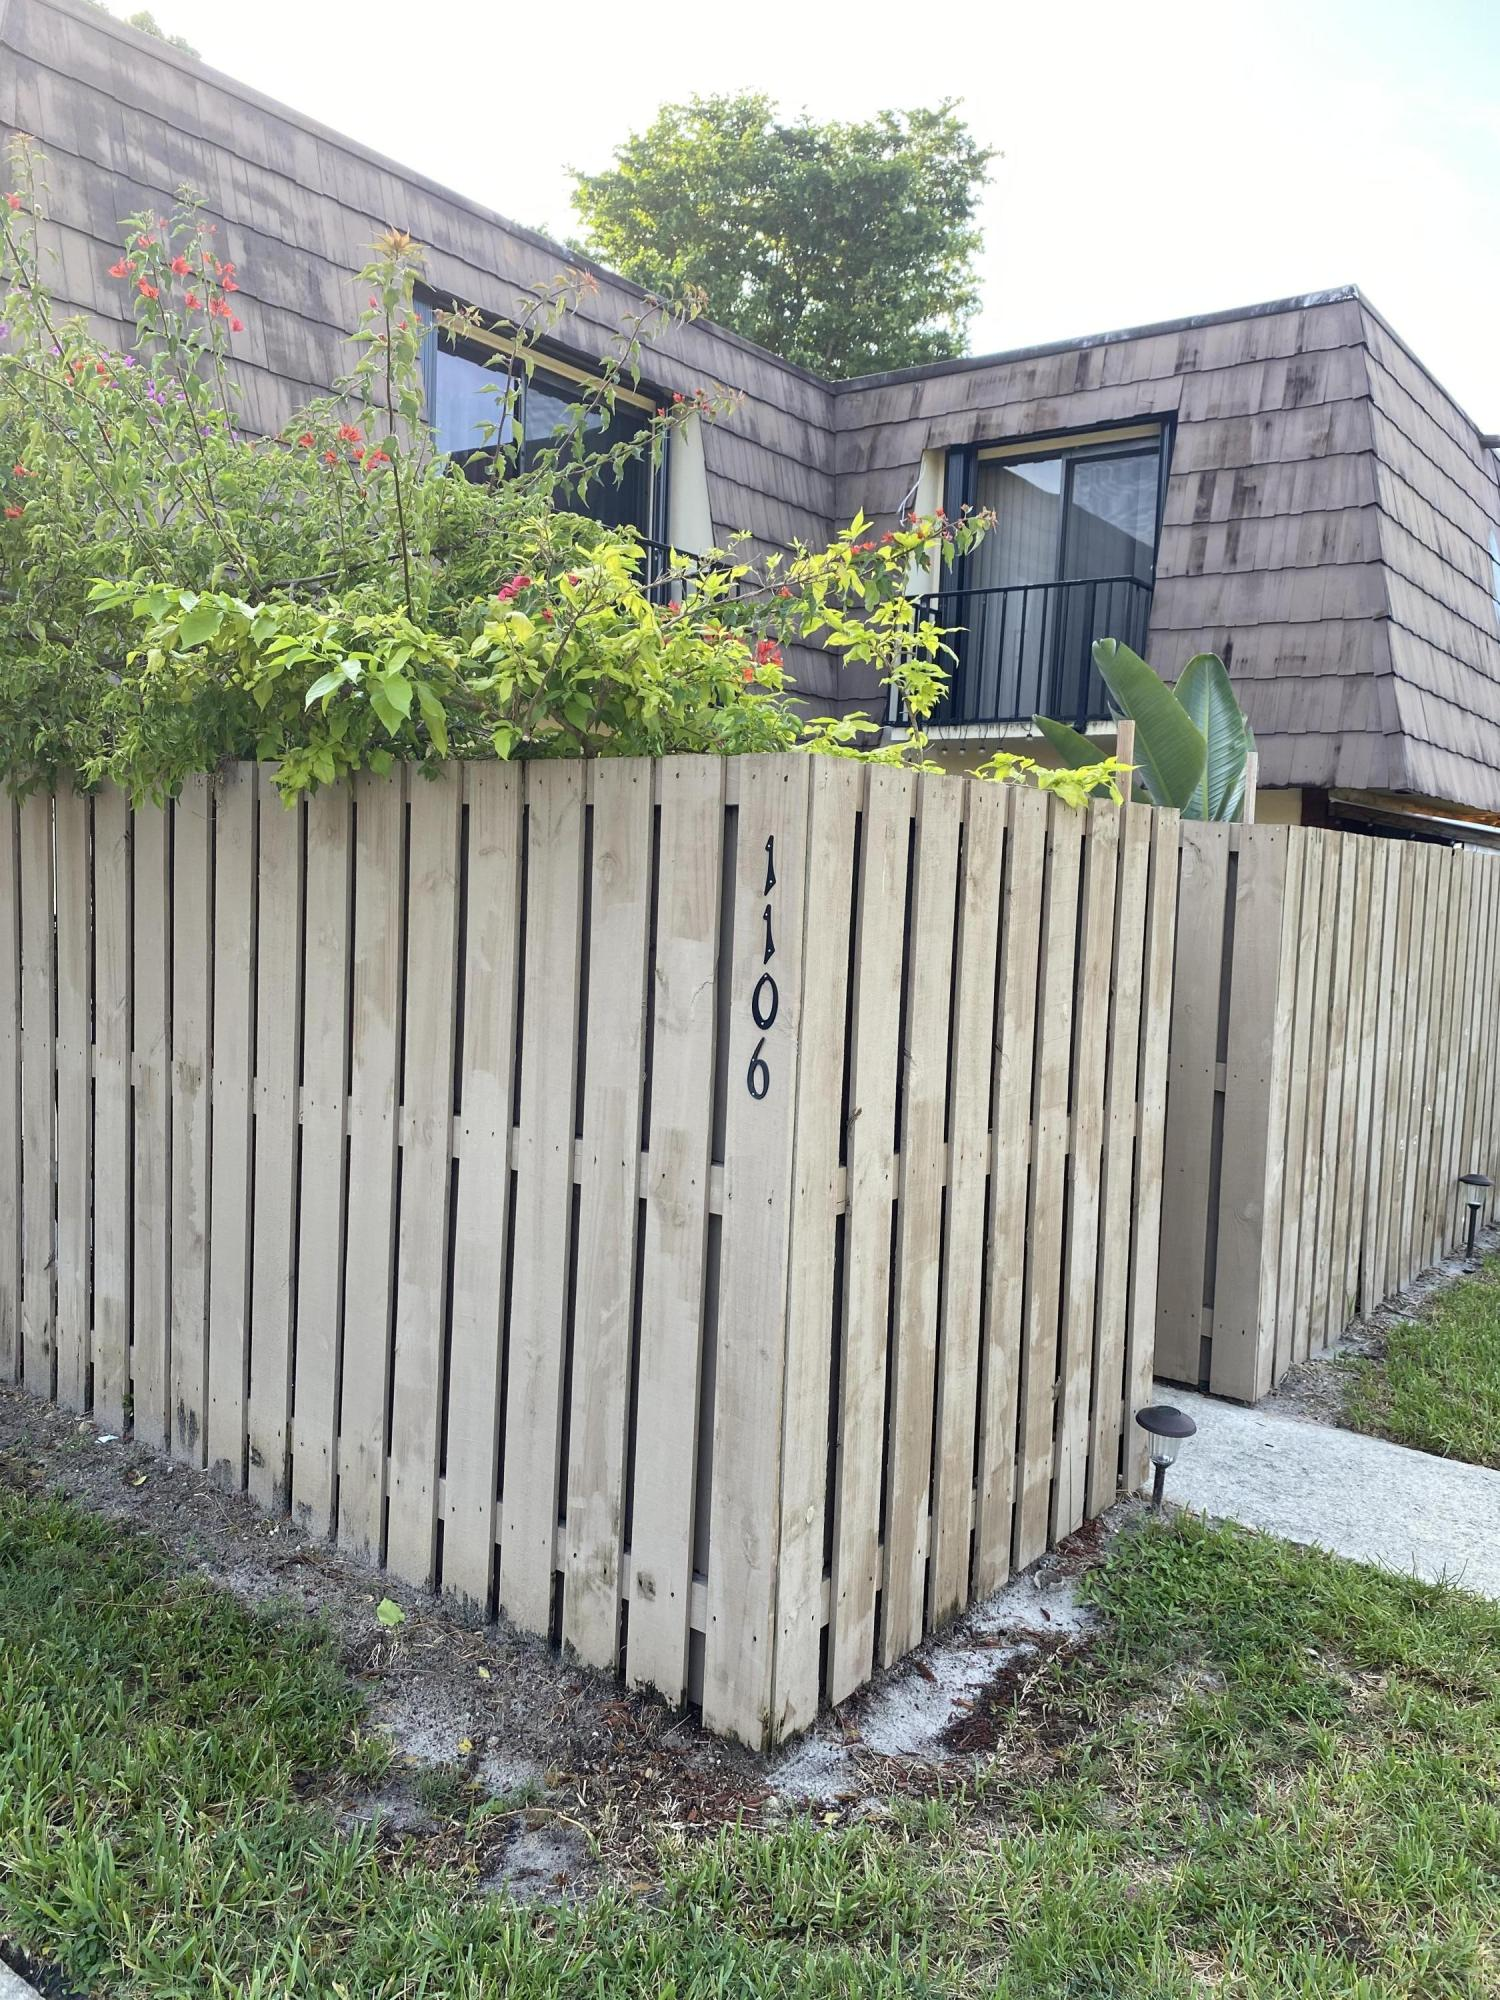 Well kept clean Townhome featuring 2BR/2.5BA with in-unit washer and dryer included. There is a private enclosed courtyard perfect for entertaining with access via sliding glass doors from the kitchen as well as the livingroom. All tile throughout, no carpet! This well-maintained residence is move-in ready and has a prime central Palm Beach Gardens location, close to shopping (including The Gardens Mall & Midtown), dining, and entertainment. Make this yours,